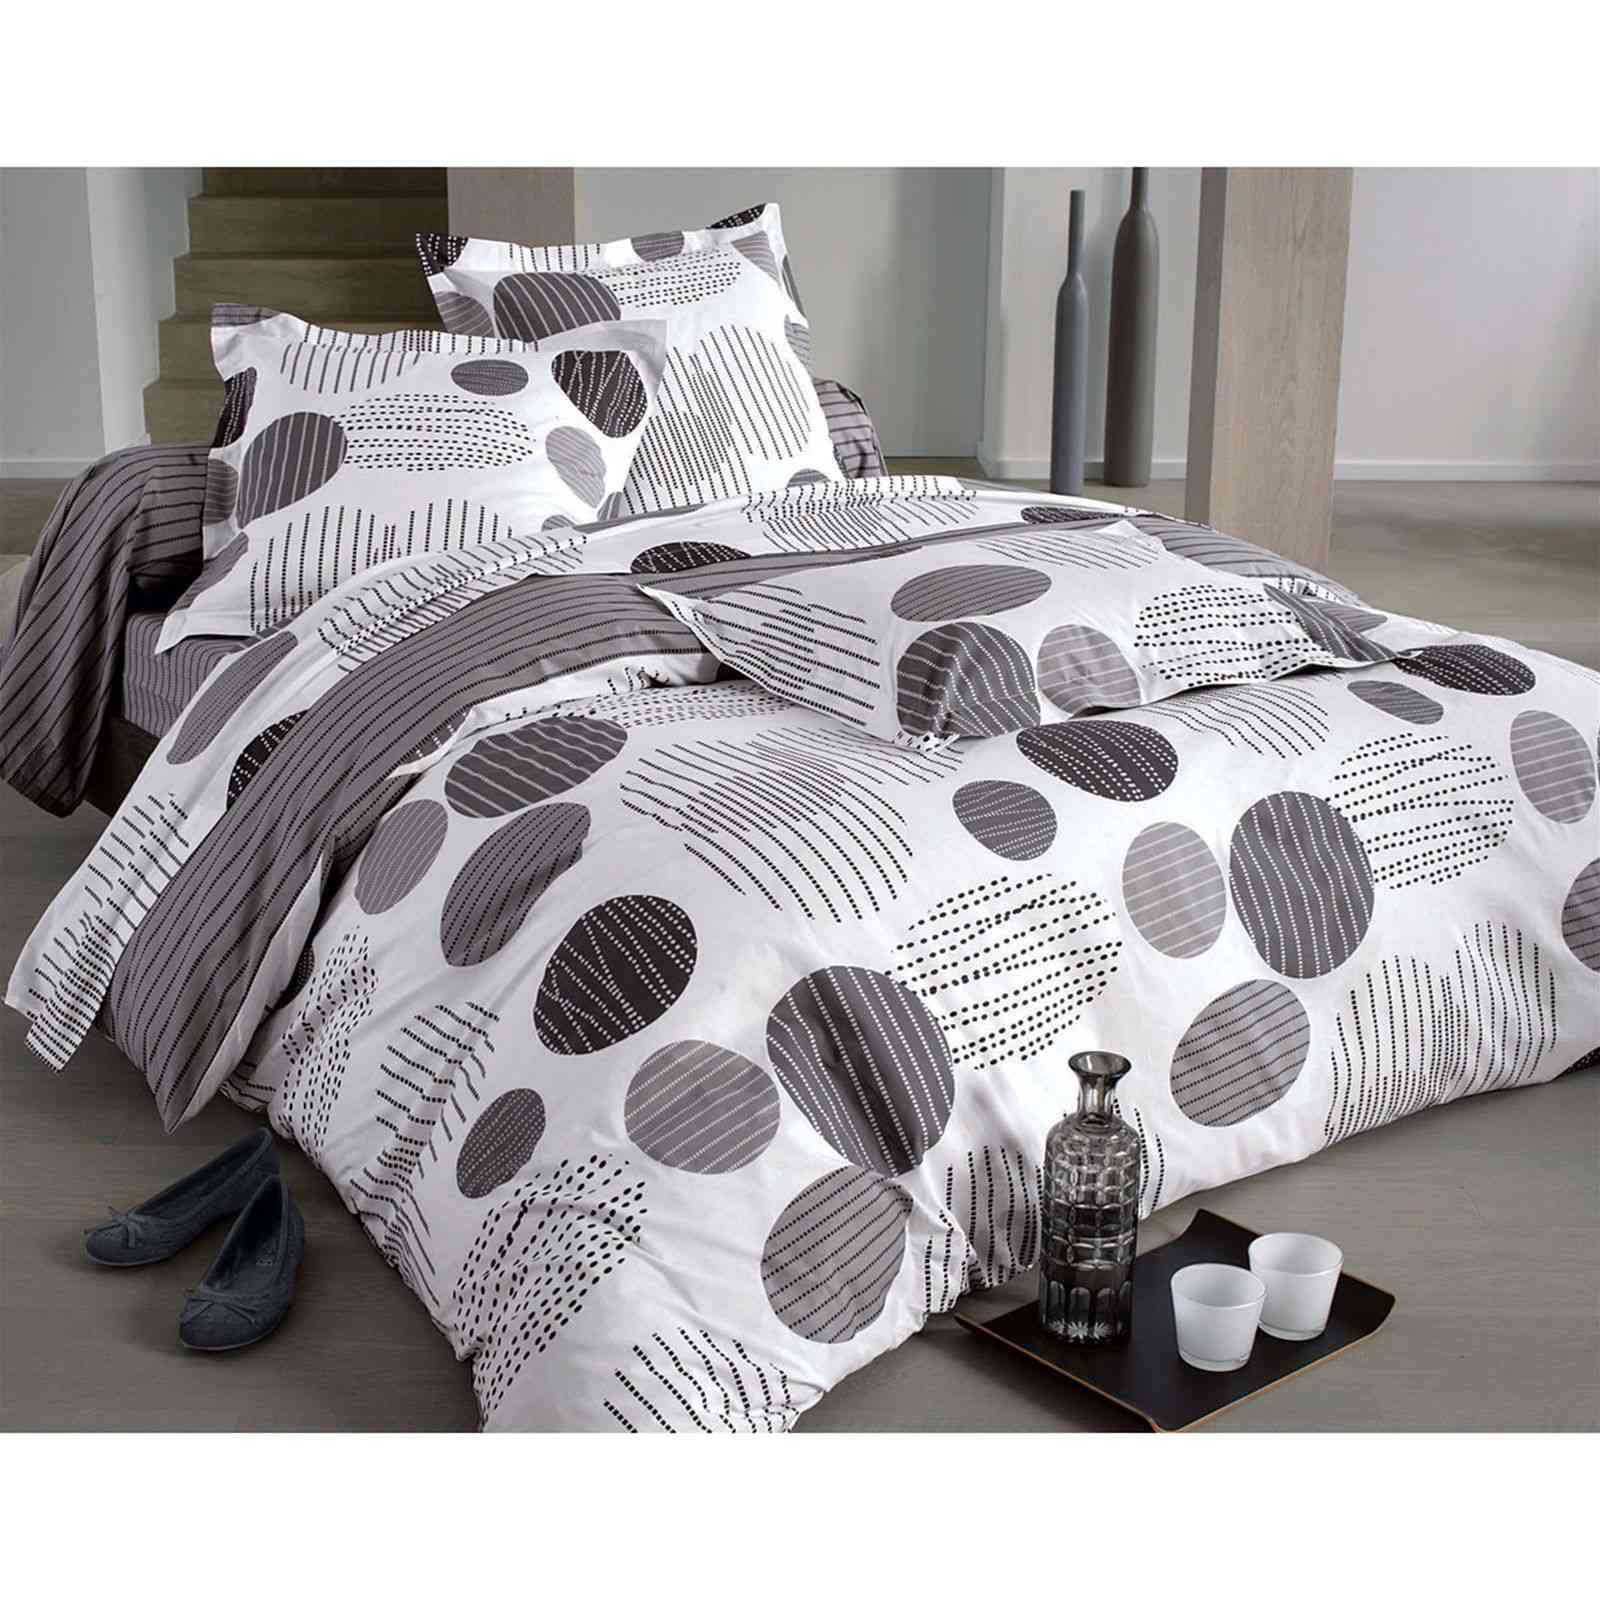 becquet housse de couette bulles et rayures gris brandalley. Black Bedroom Furniture Sets. Home Design Ideas